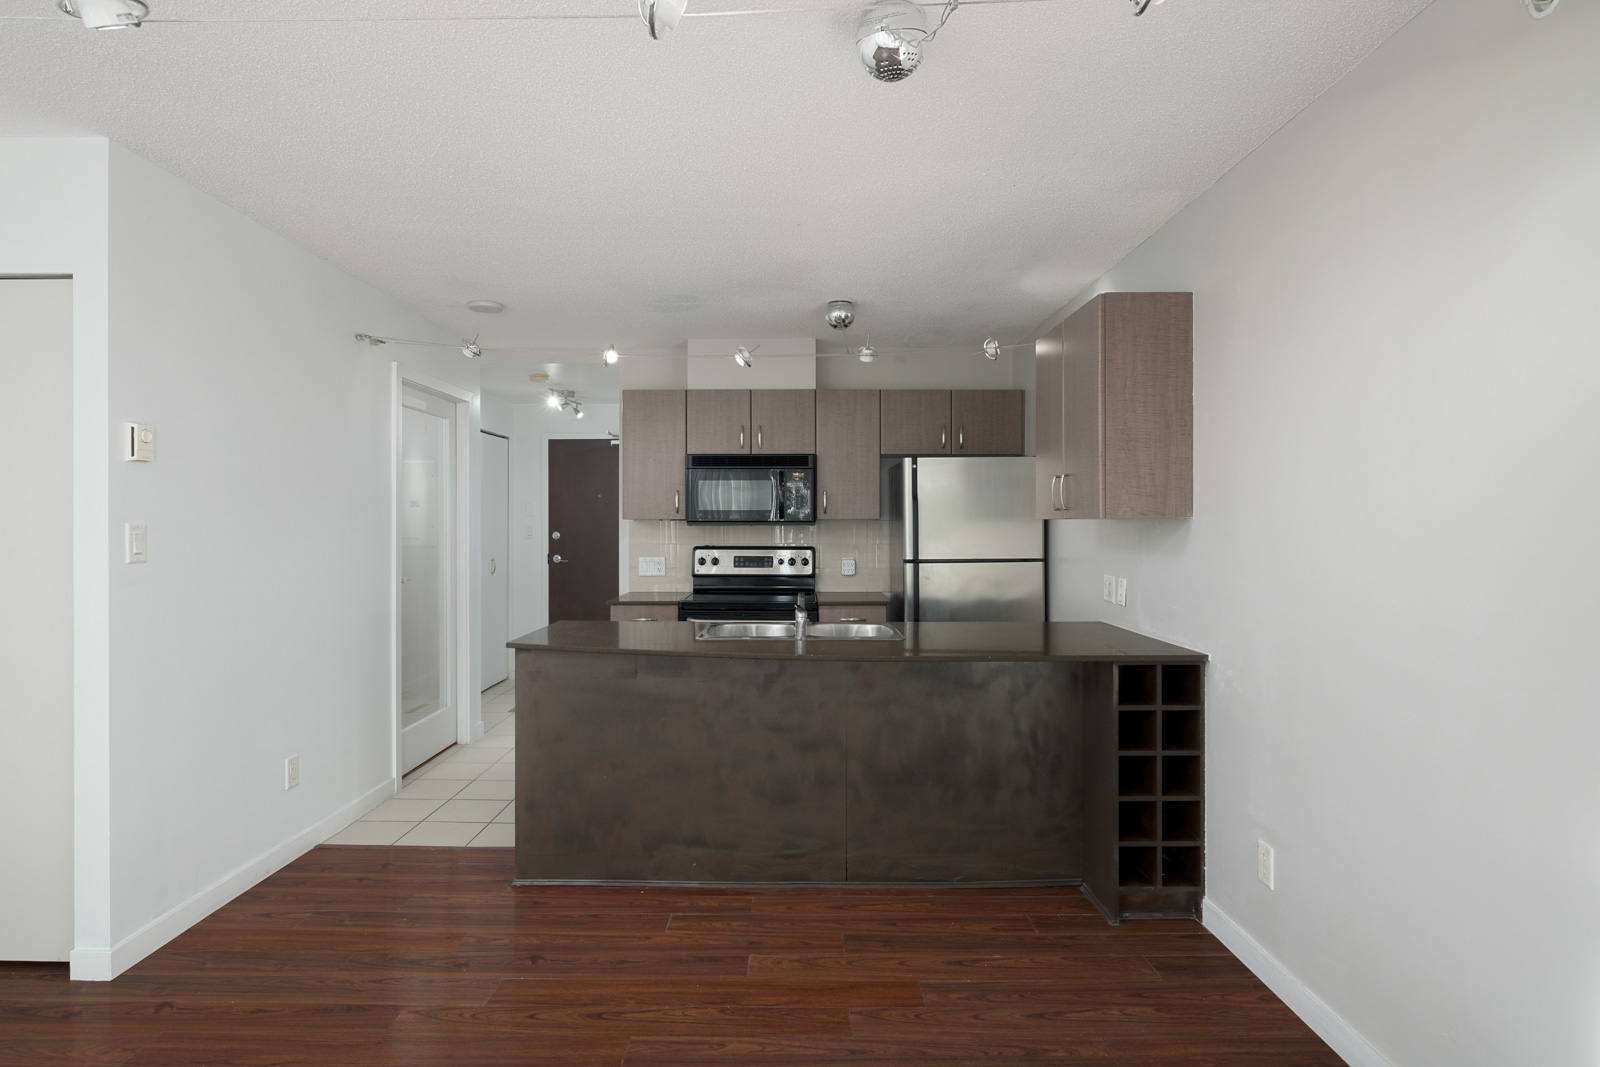 kitchen and living room view with hardwood flooring in rental condo in the downtown vancouver neighbourhood